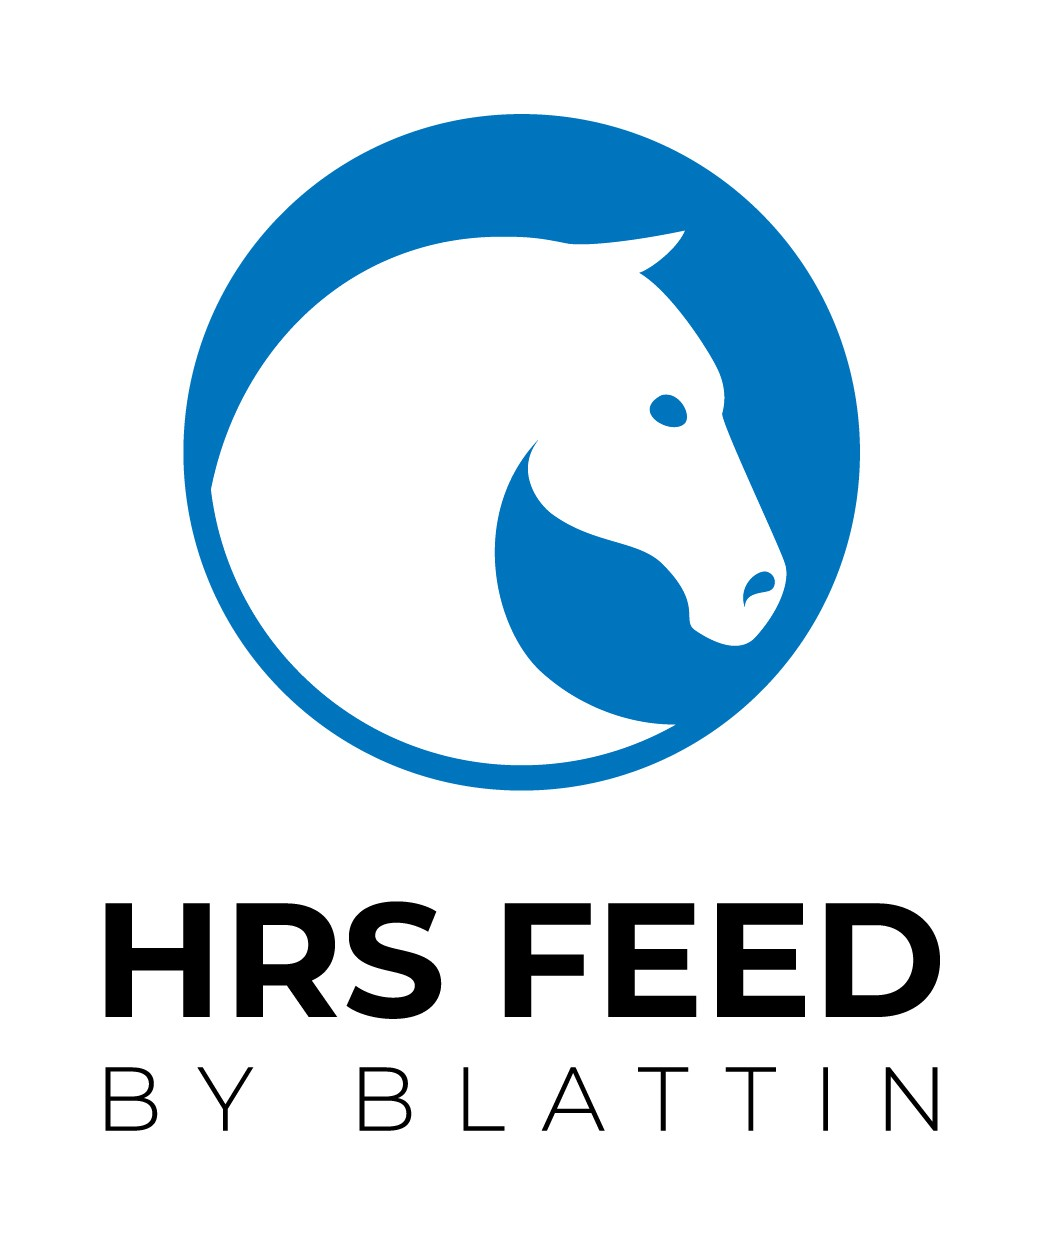 HRSFeed by Blattin